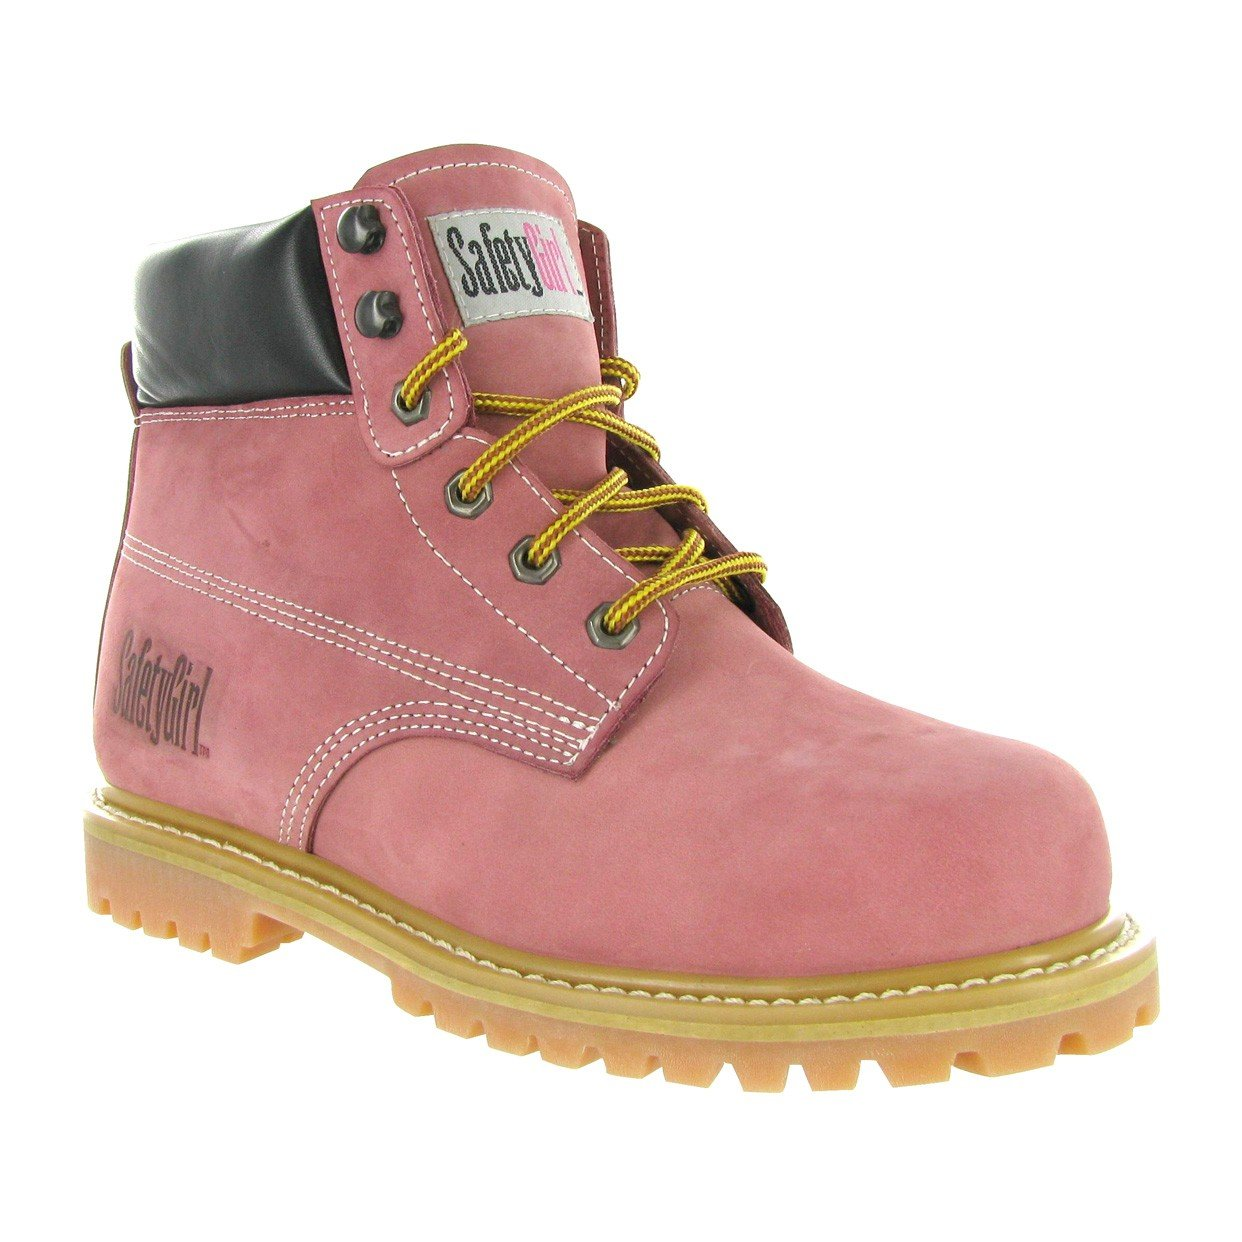 Safety Girl GS003-Lt Pink-8M Steel Toe Work Boots - Light Pink - 8M, English, Capacity, Volume, Leather, 8M, Pink ()